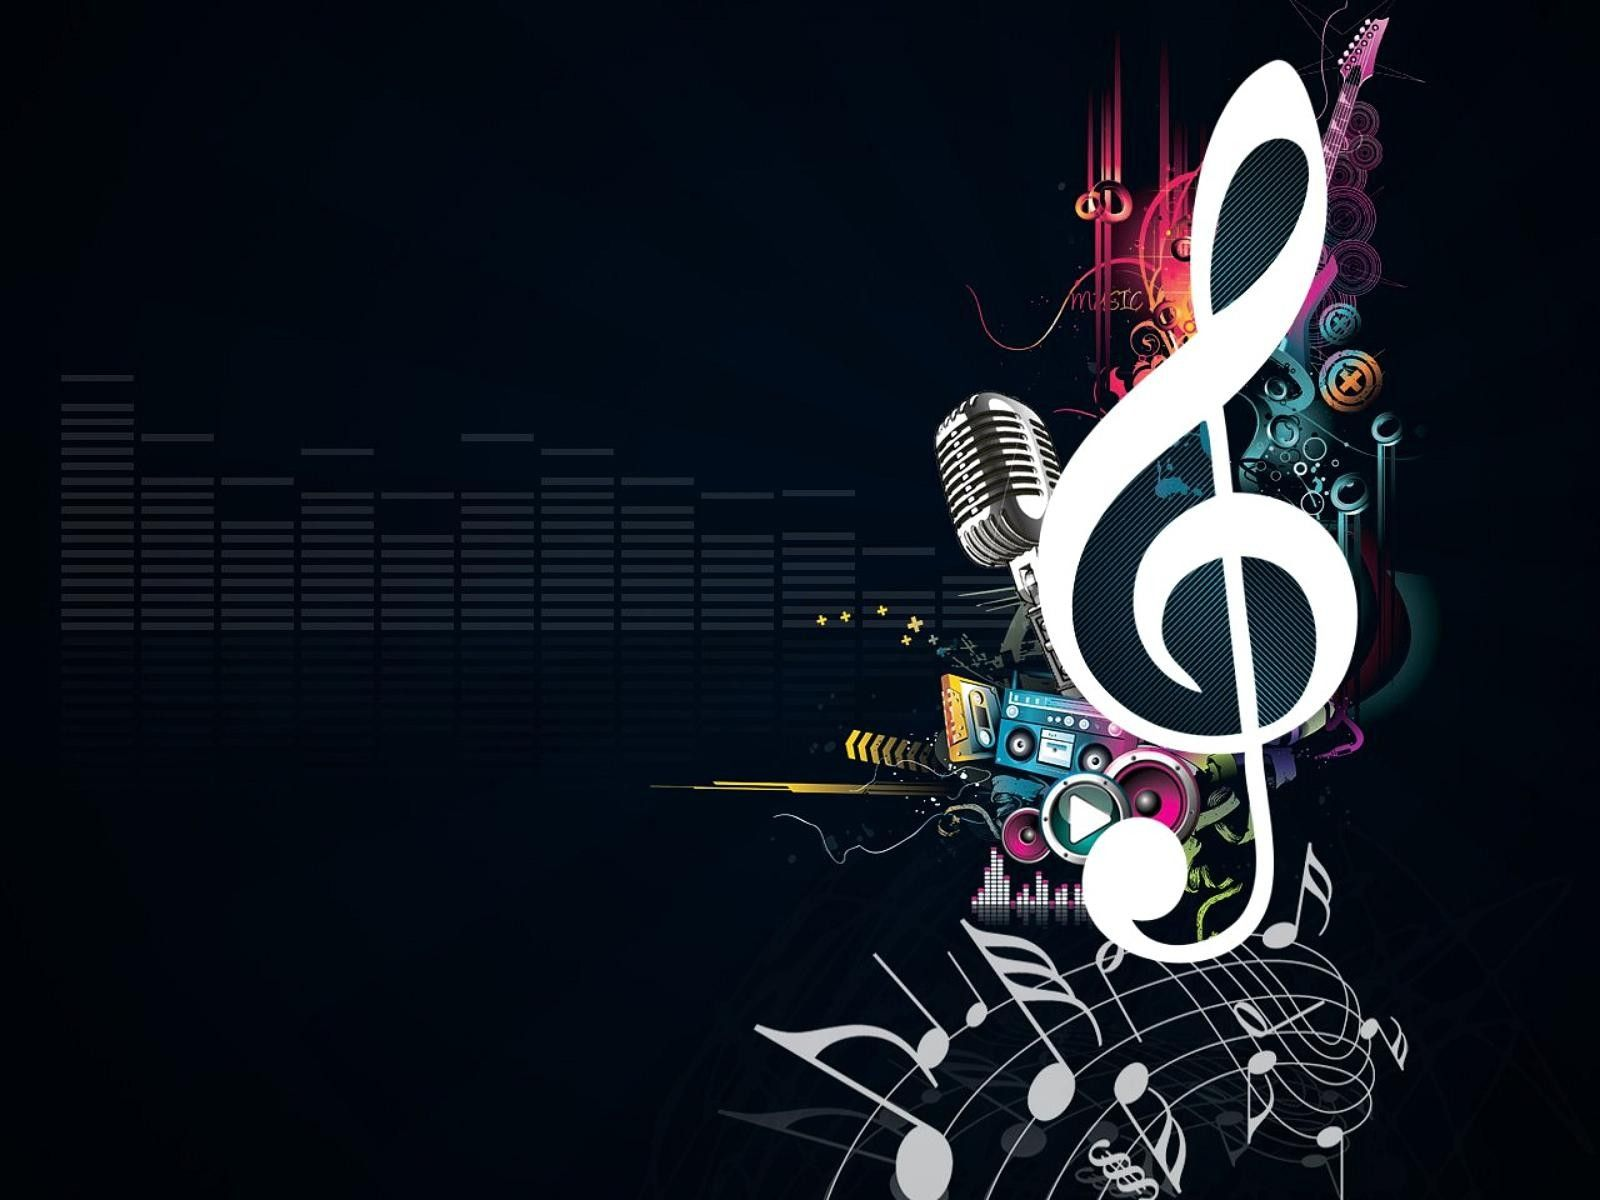 music-images-wallpaper